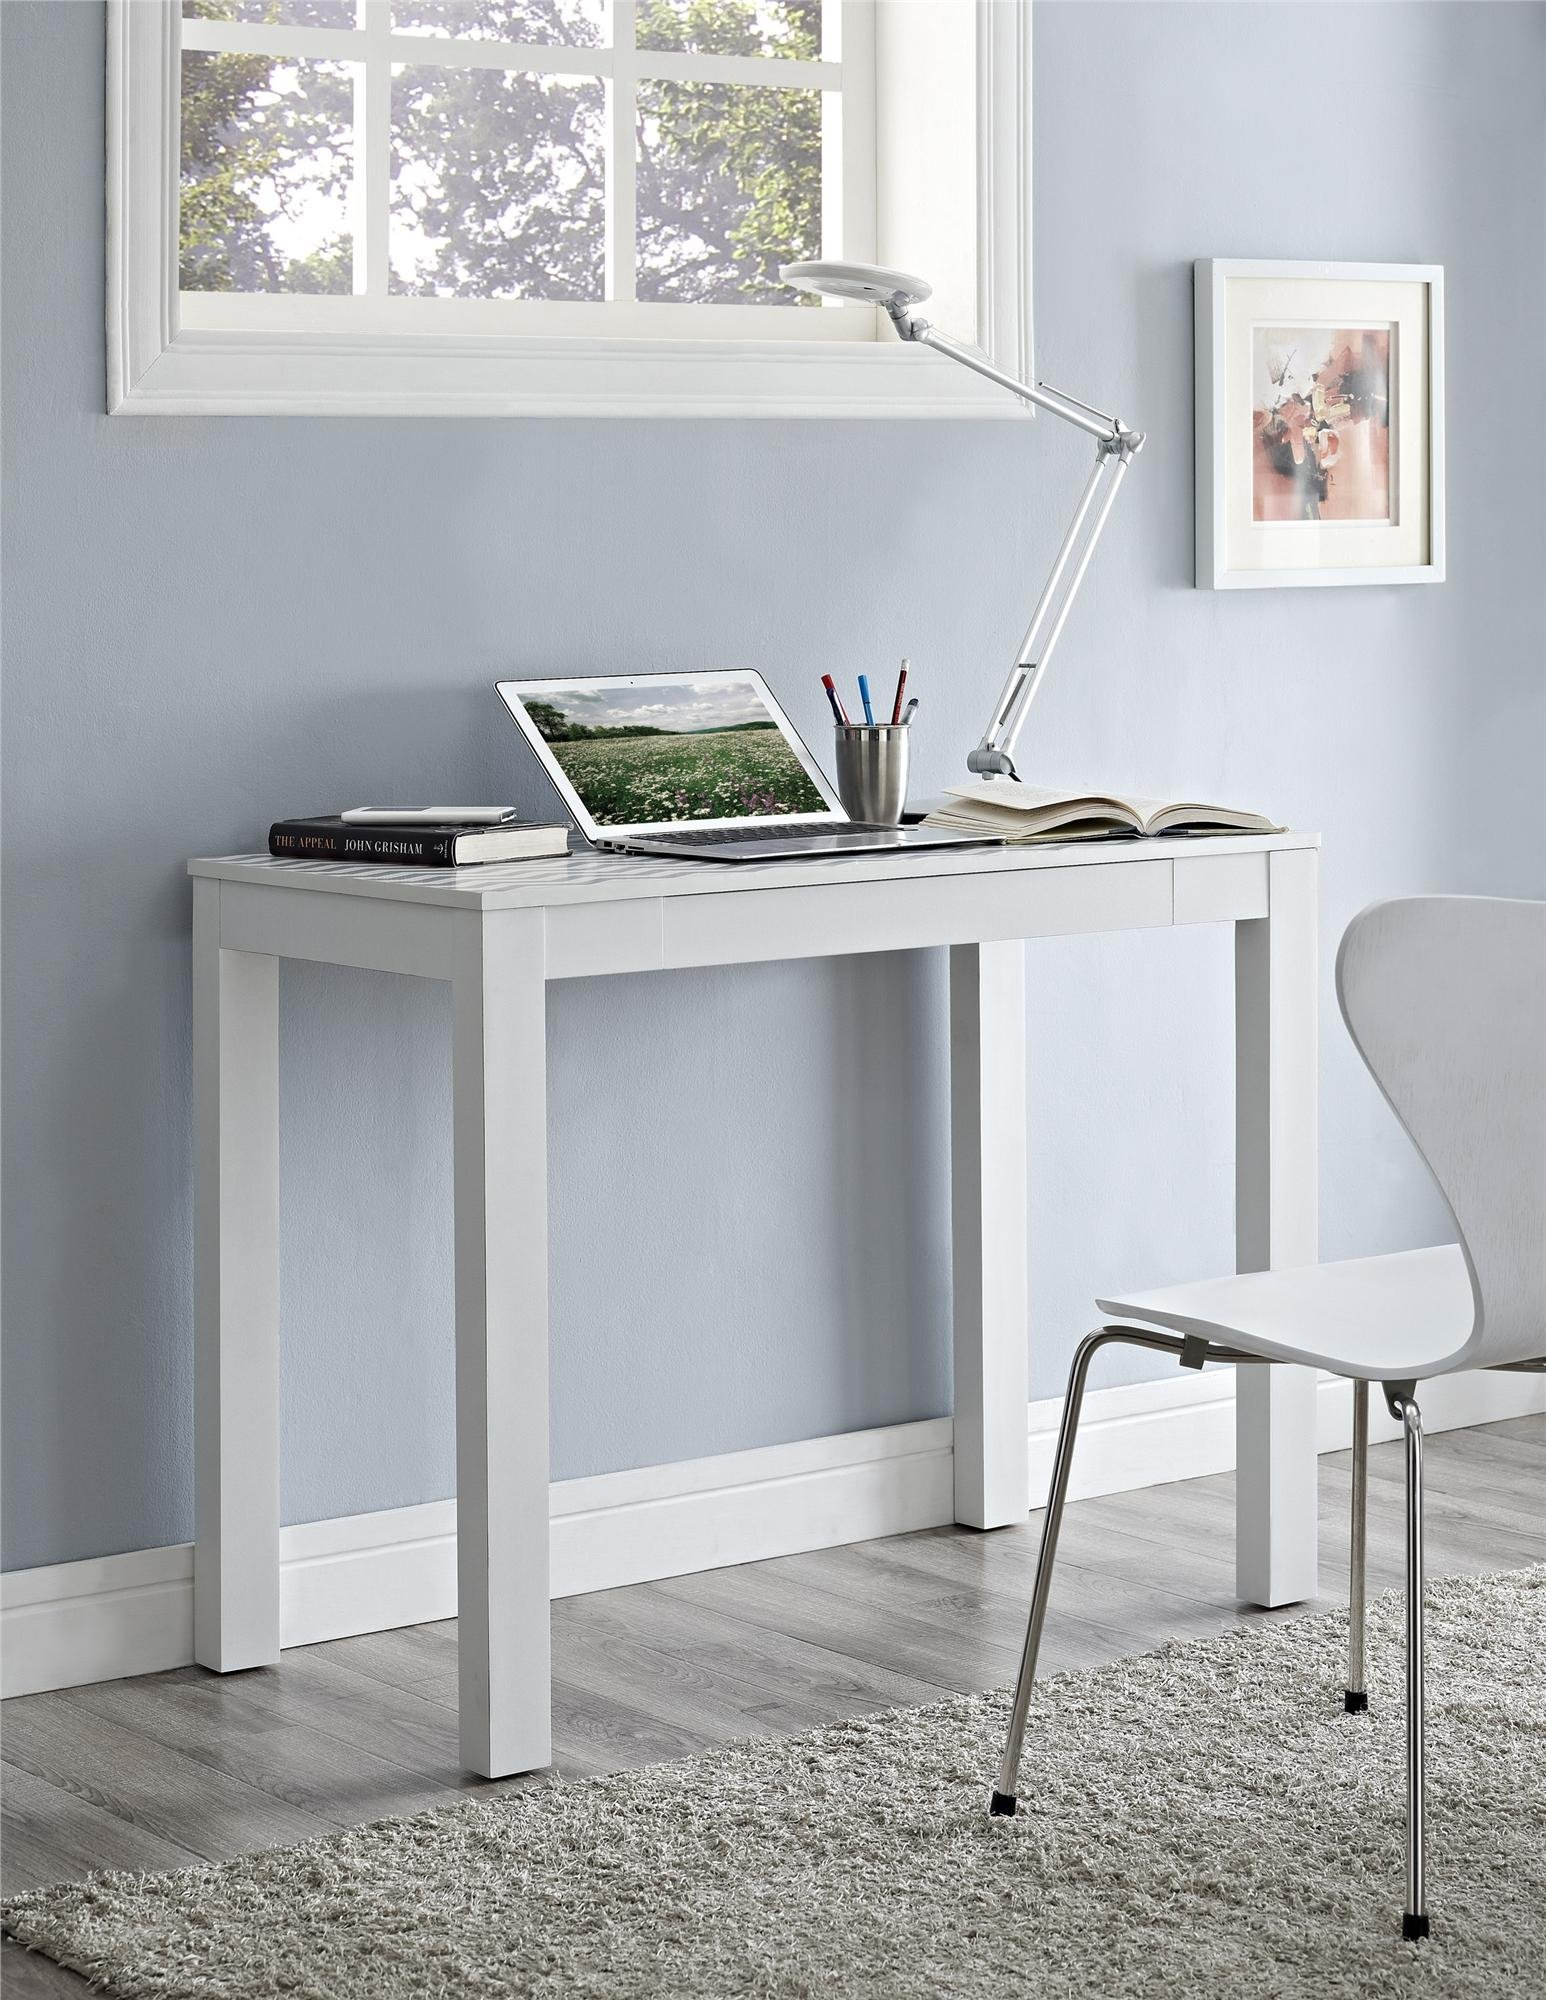 Ameriwood Home Parsons Desk Drawer, White/Gray Chevron by Ameriwood Home (Image #2)